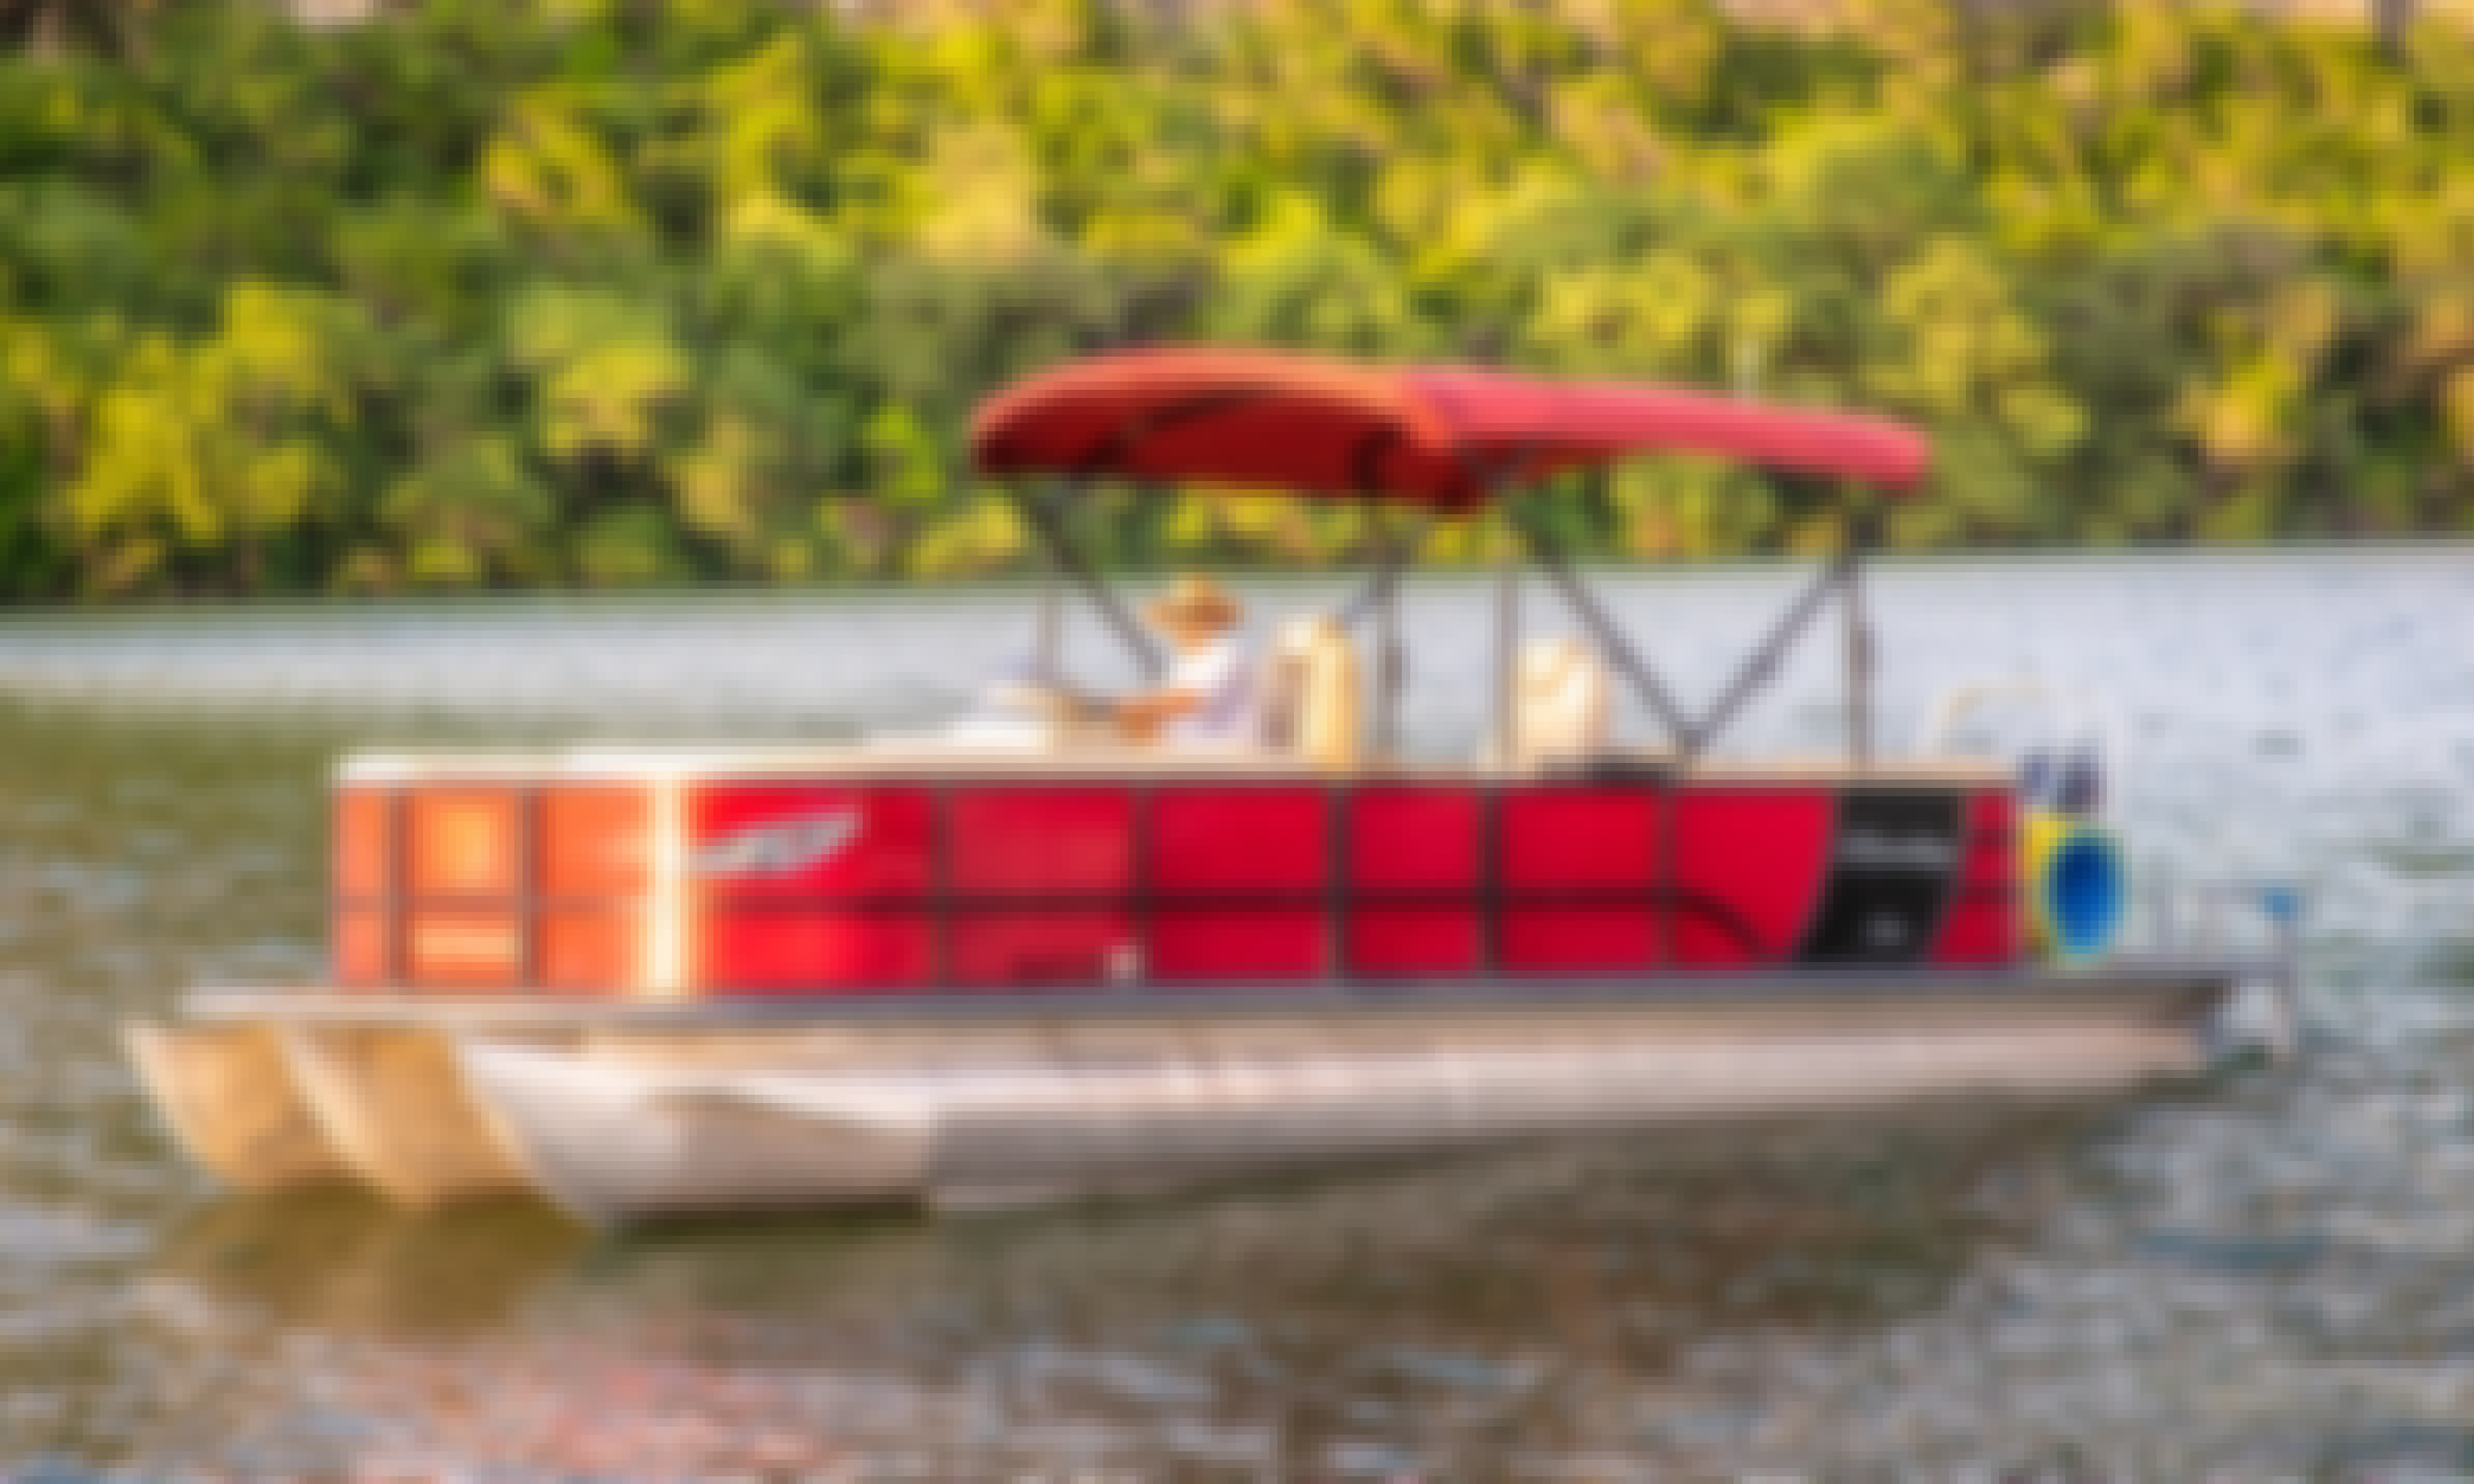 Lake Austin Boat Rental⎮Clean & Pristine Pontoons⎮VIP Service at Laid Back Prices